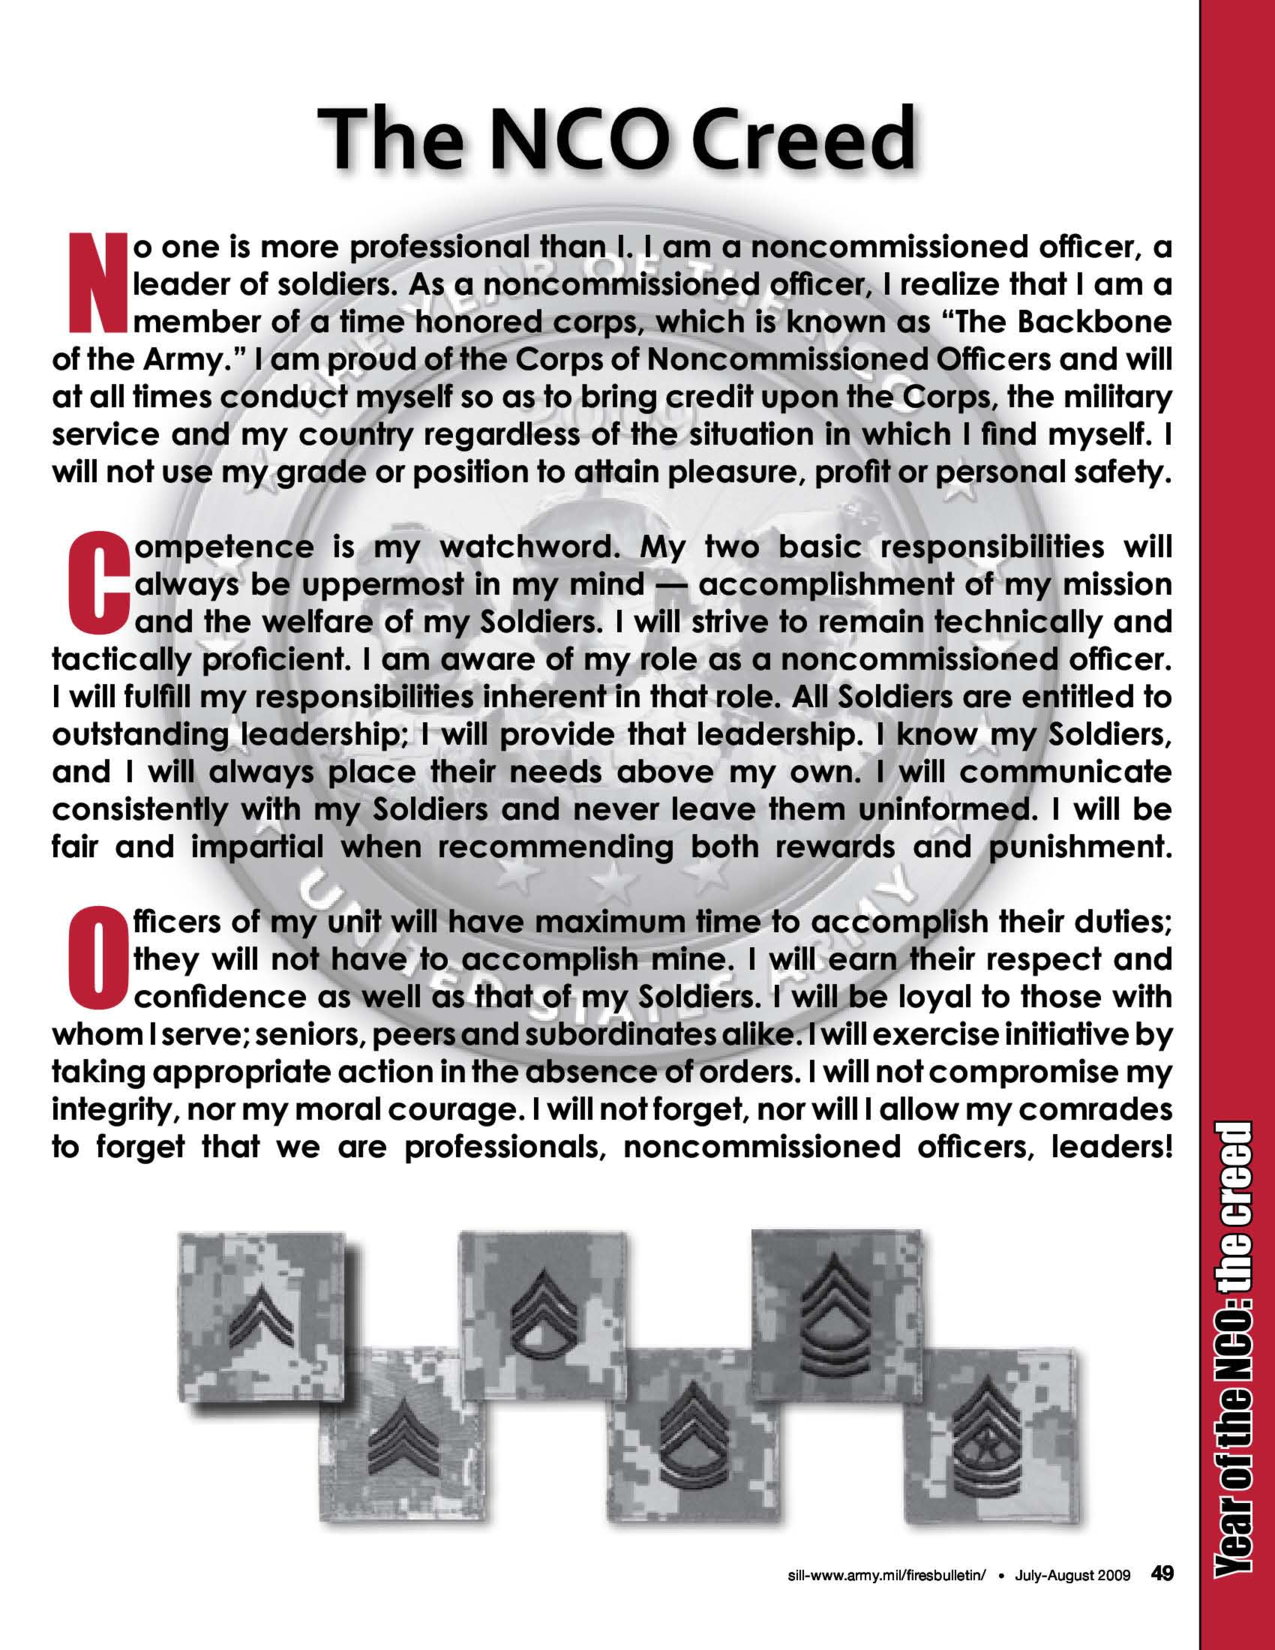 disrespect non commissioned officer and soldiers creed Creeds the soldier's creed the non-commissioned officer's creed no one is more professional than i i am a noncommissioned officer, a leader of soldiers.